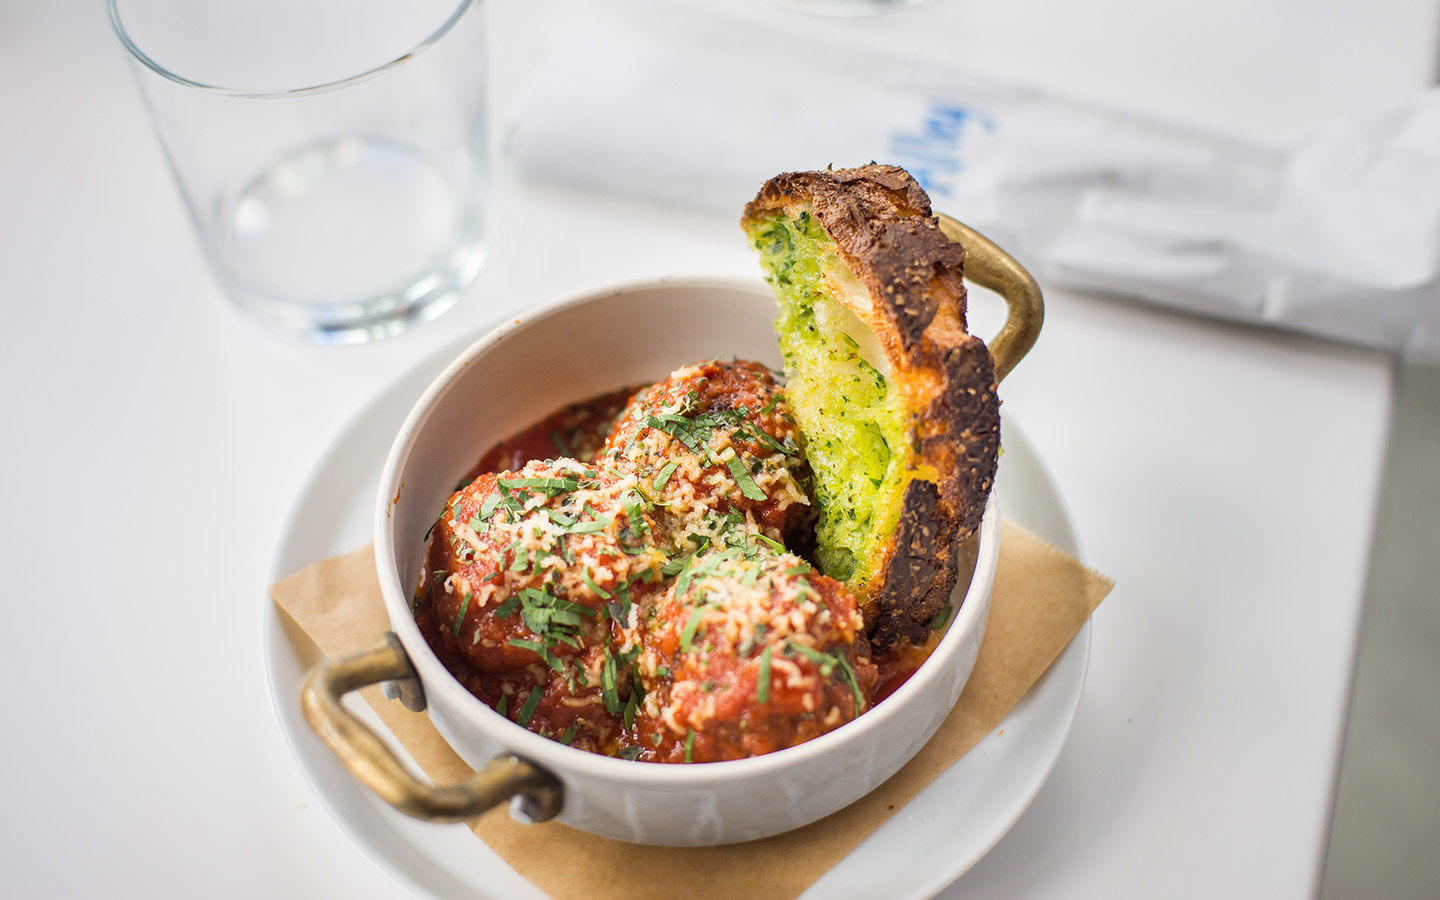 VEAL & MORTADELLA MEATBALLS